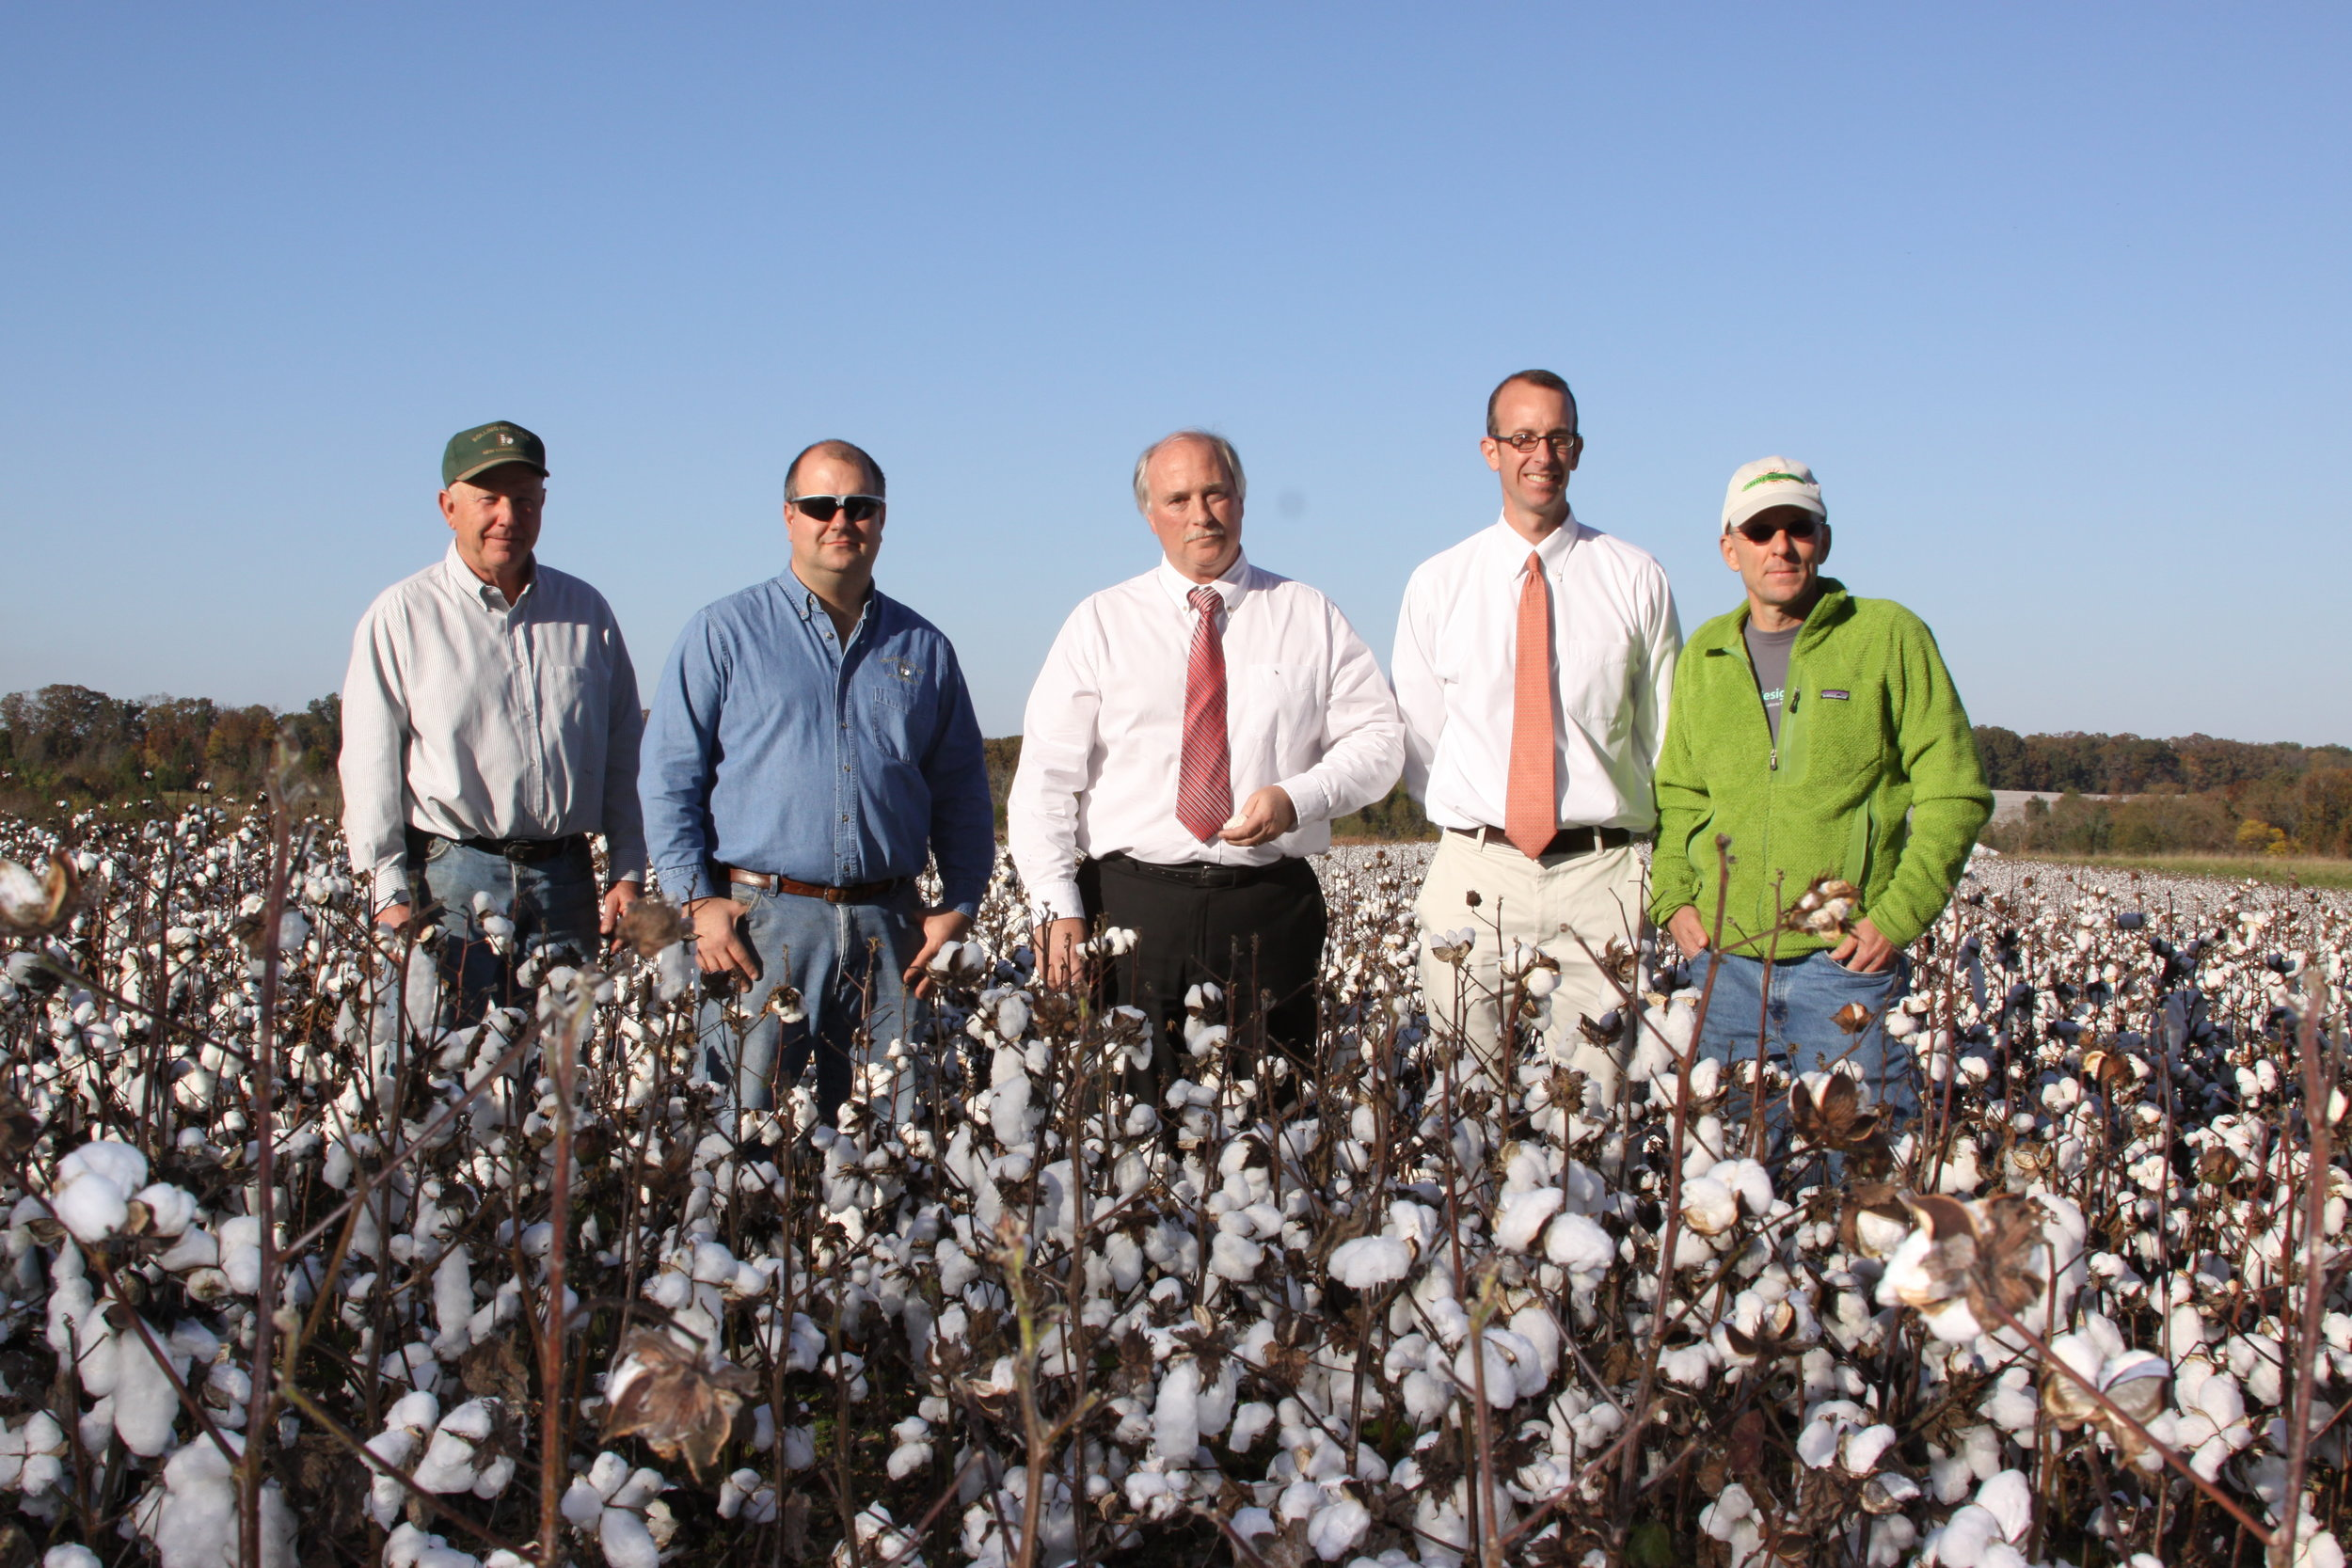 Shareholders meeting in the cotton field